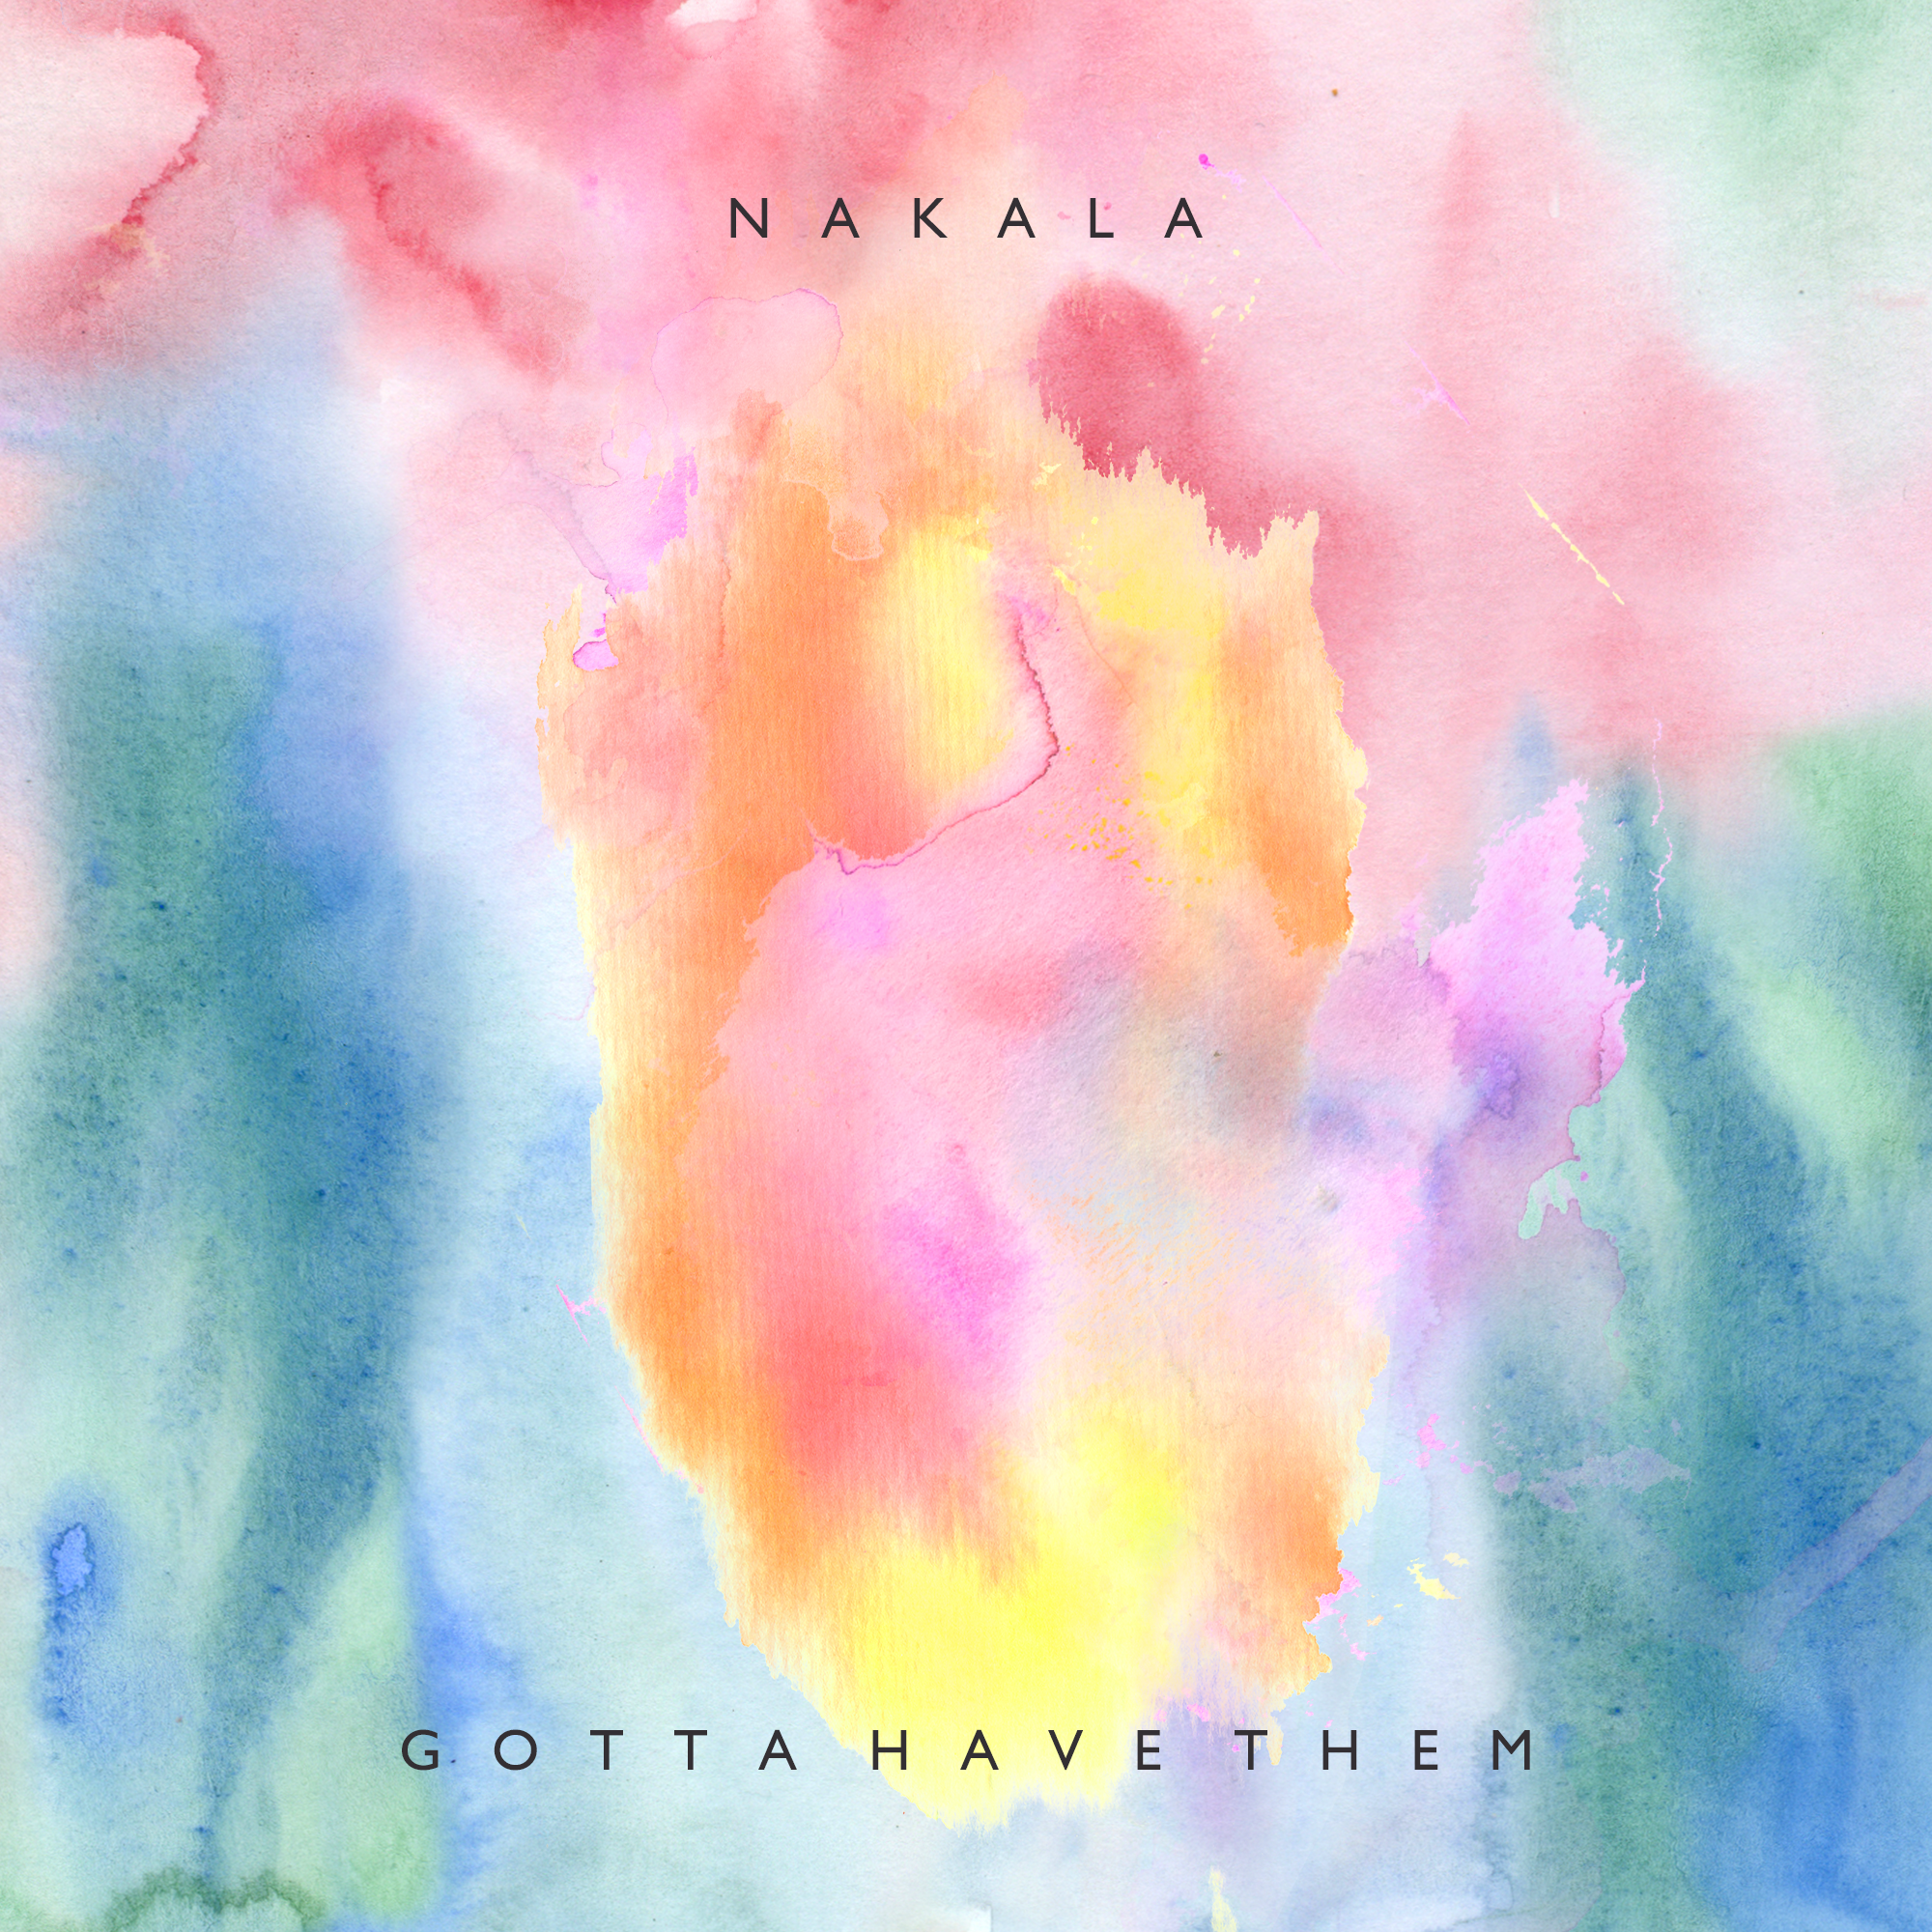 nakala gottahavethem artwork sample B (1).png